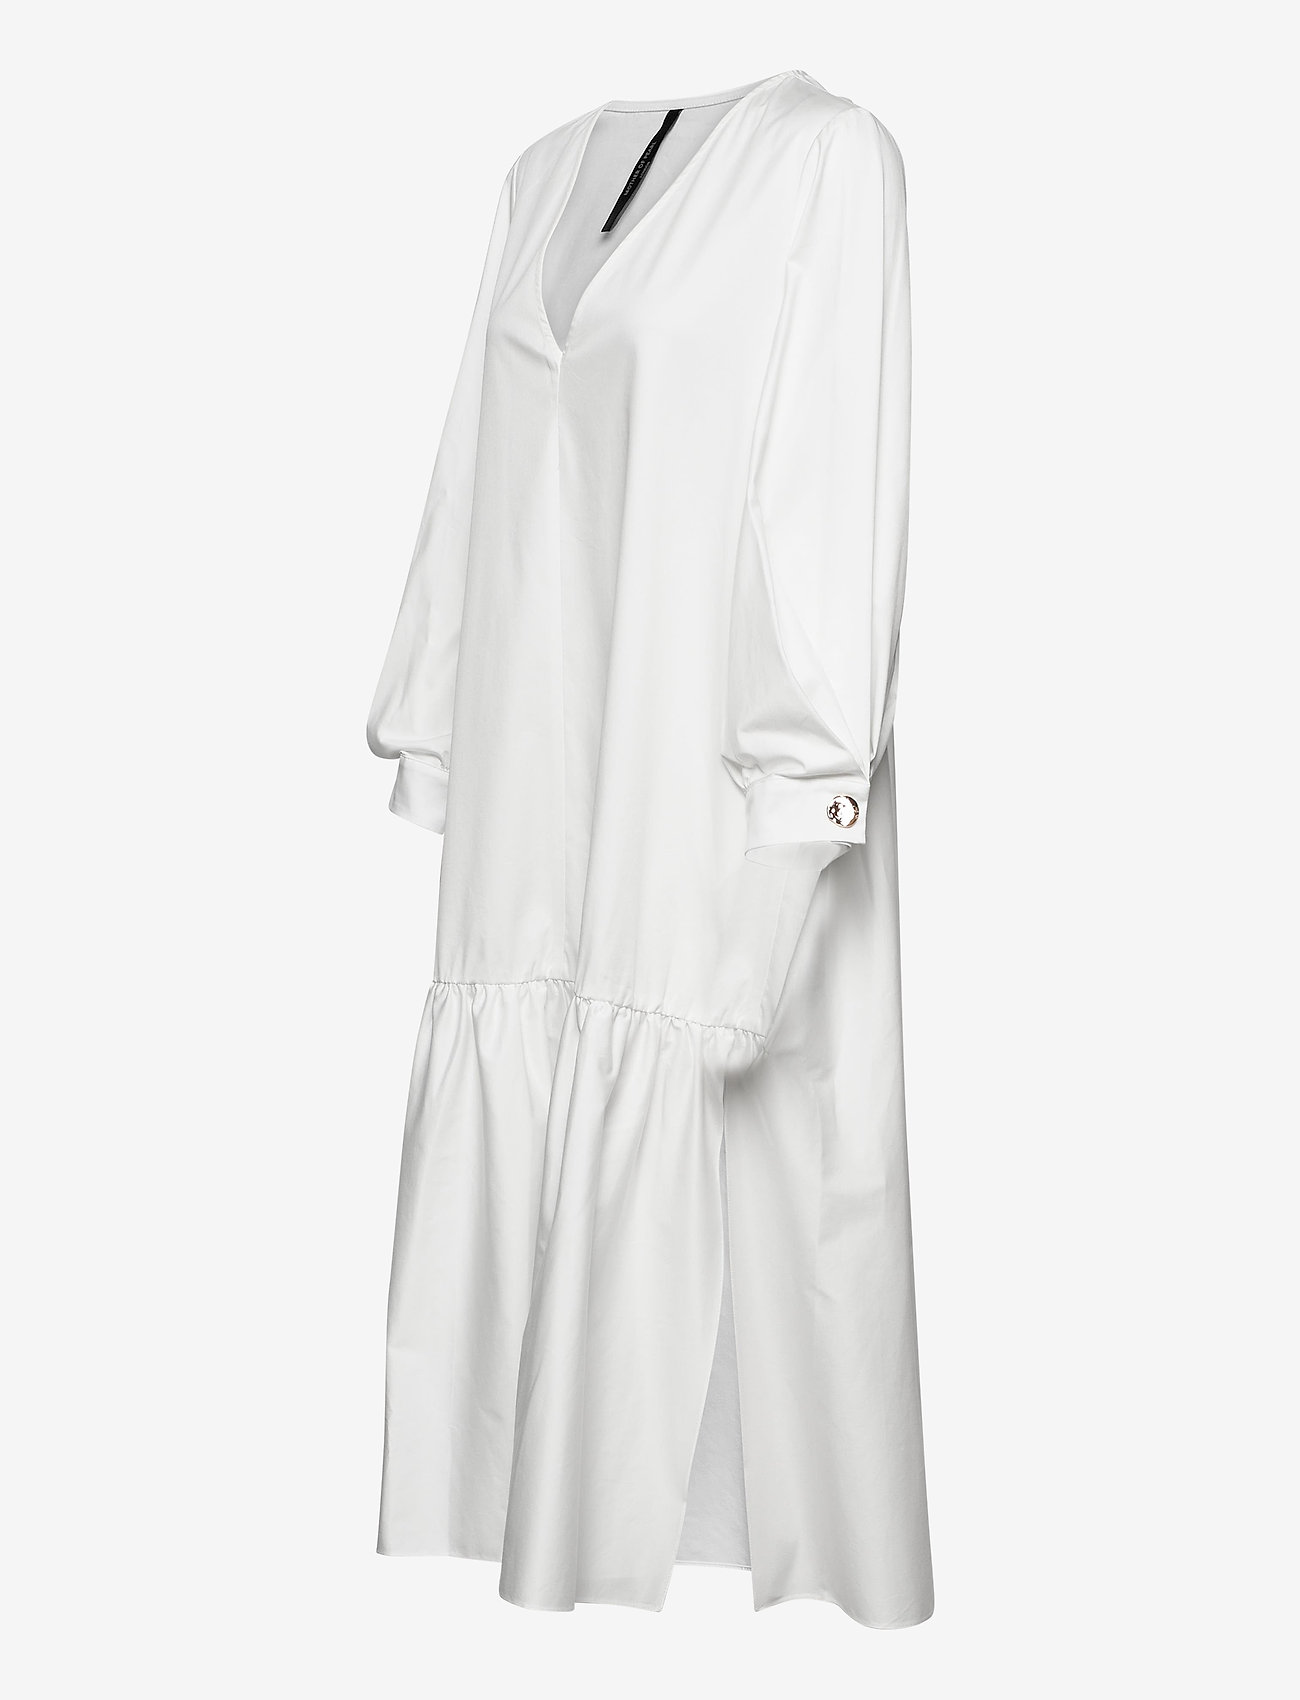 Mother of Pearl - DANICA WHITE DRESS - evening dresses - white - 3